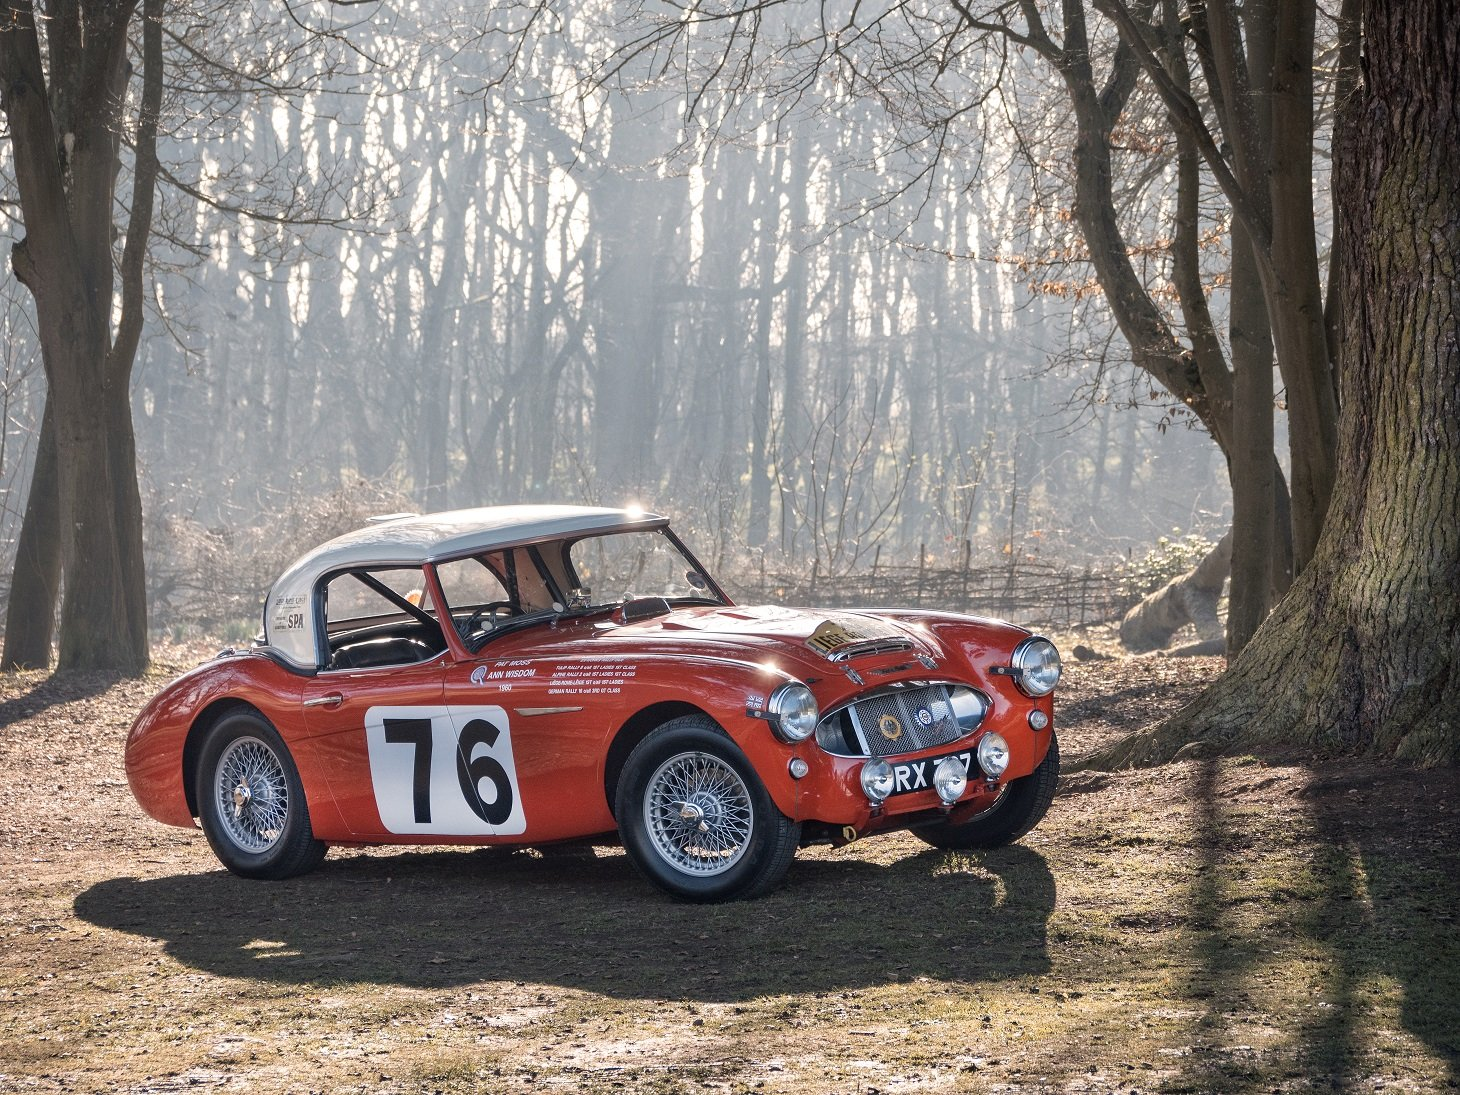 The ex-Works, Moss/Wisdom, 1960 Liege-Rome-Liege Winning car For Sale (picture 1 of 6)